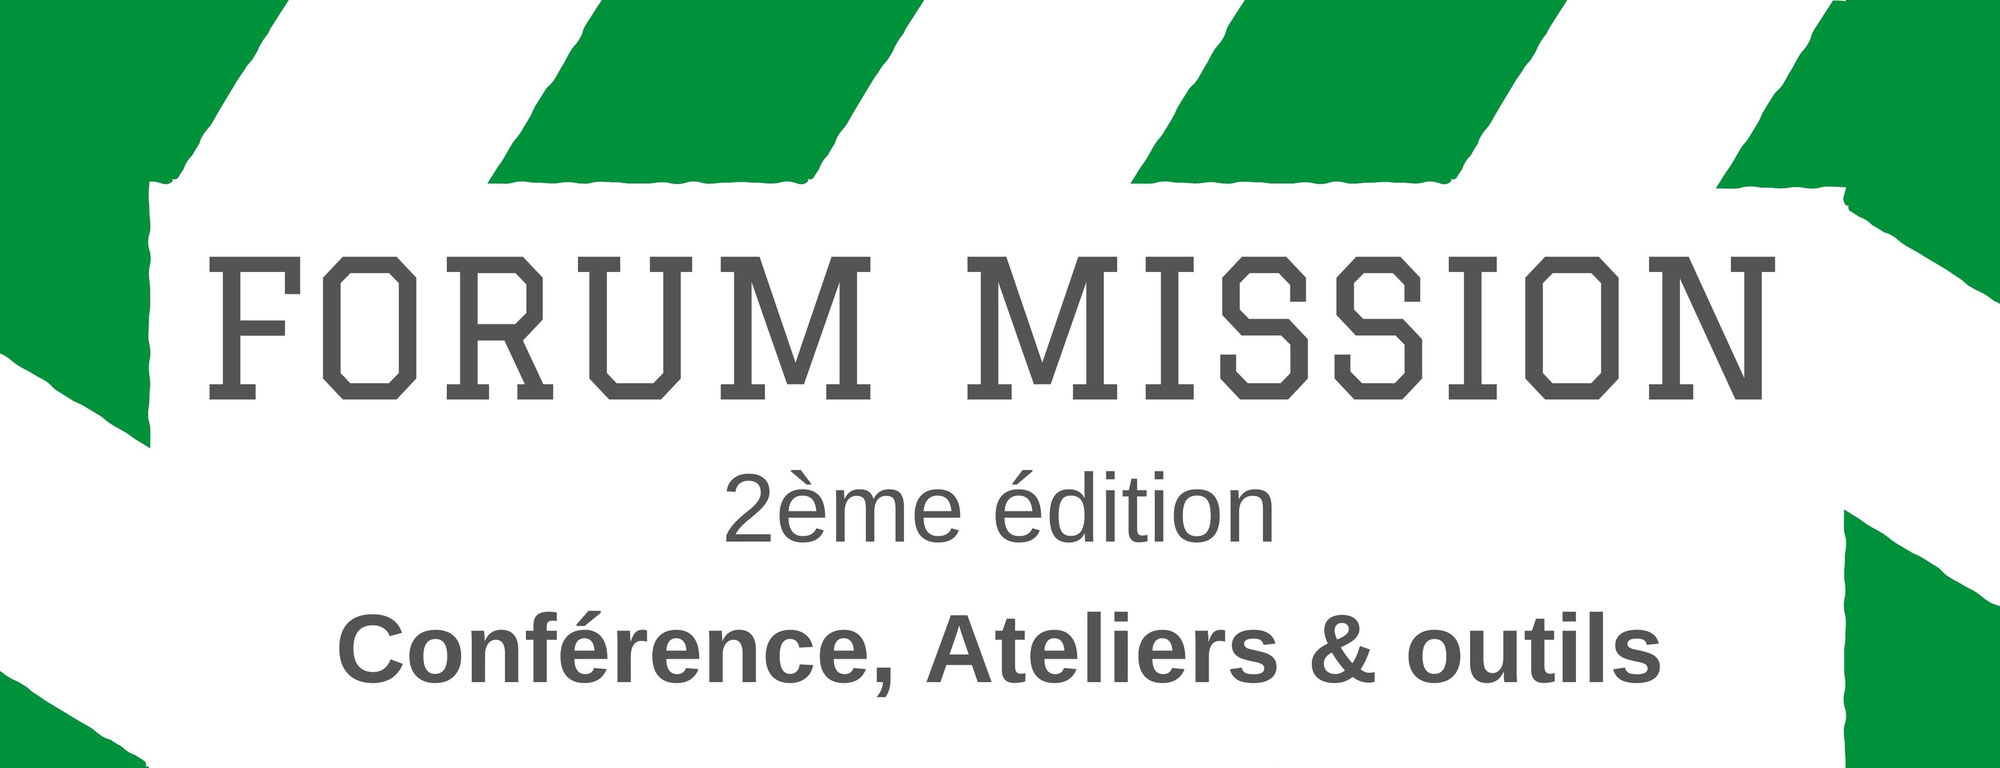 2ème édition du Forum Mission